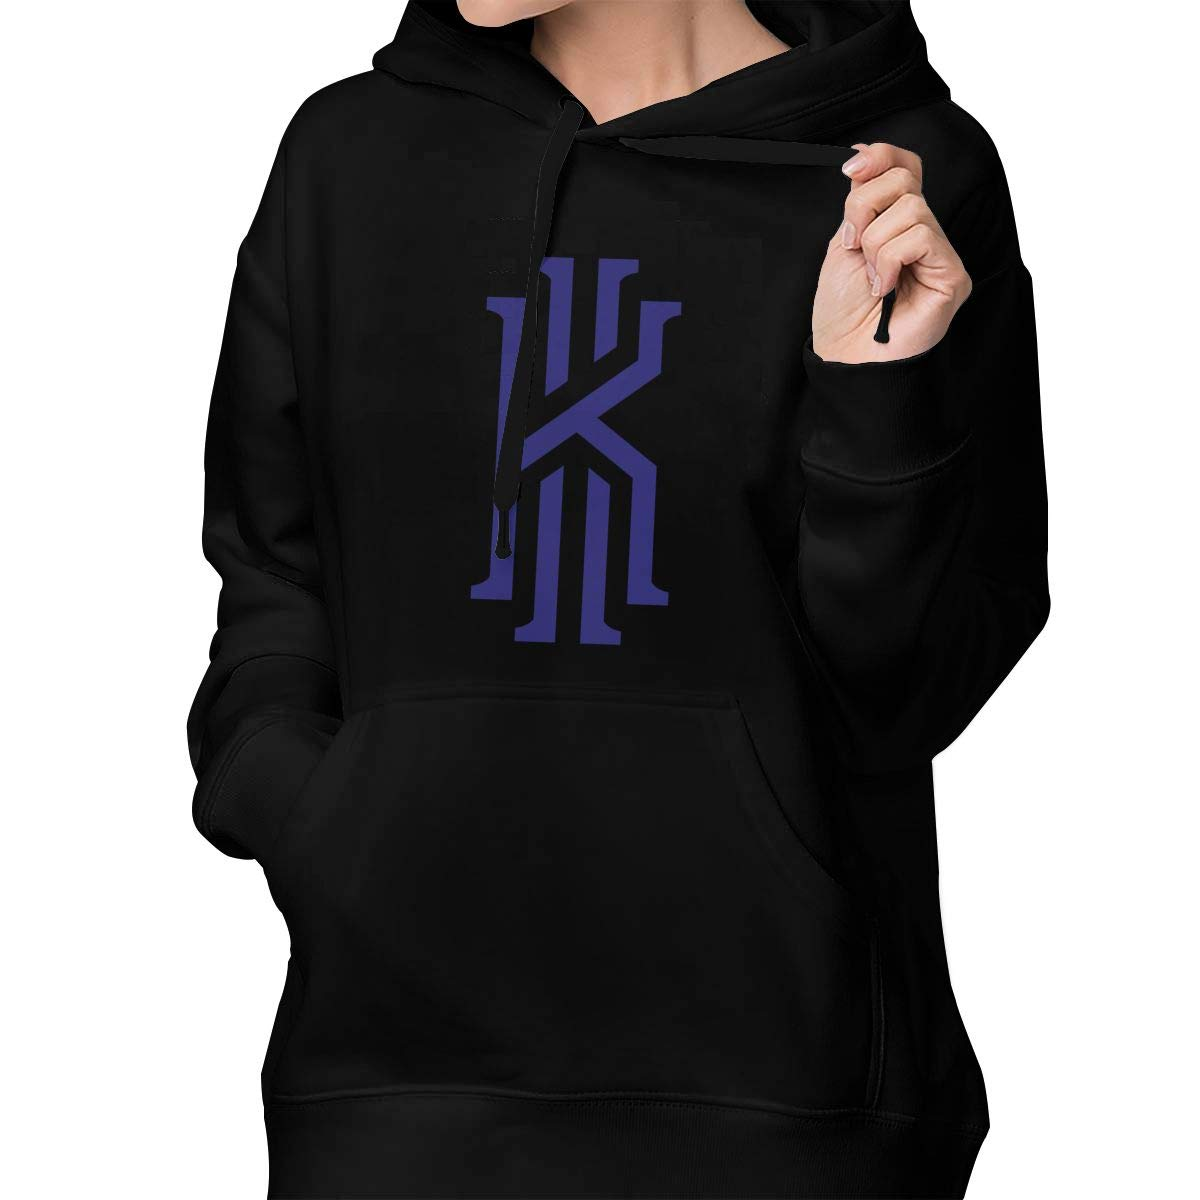 Womens Pullover Hoodie Kyrie K Irving Shirts Shirt Hooded Sweatshirt Hoodies for Women Girls Clothes Outdoor Sport Tops Black S